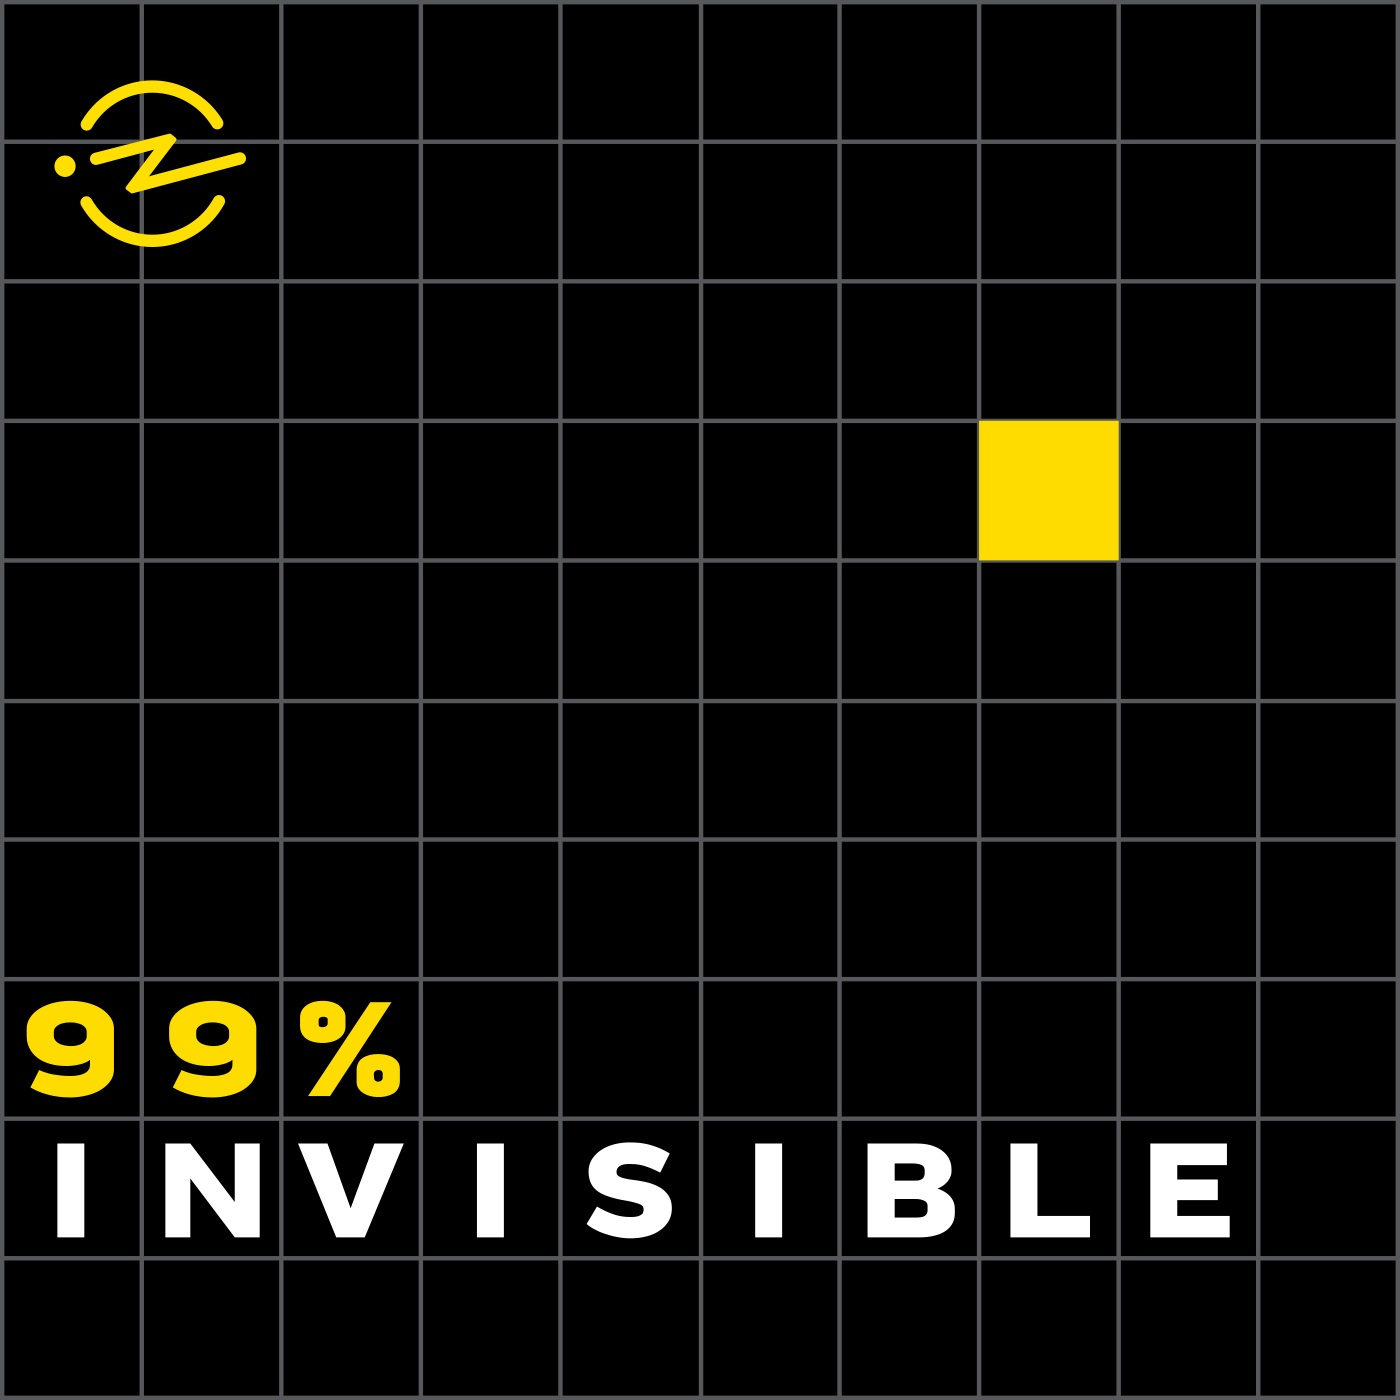 99% Invisible presents What Trump Can Teach Us About Con Law